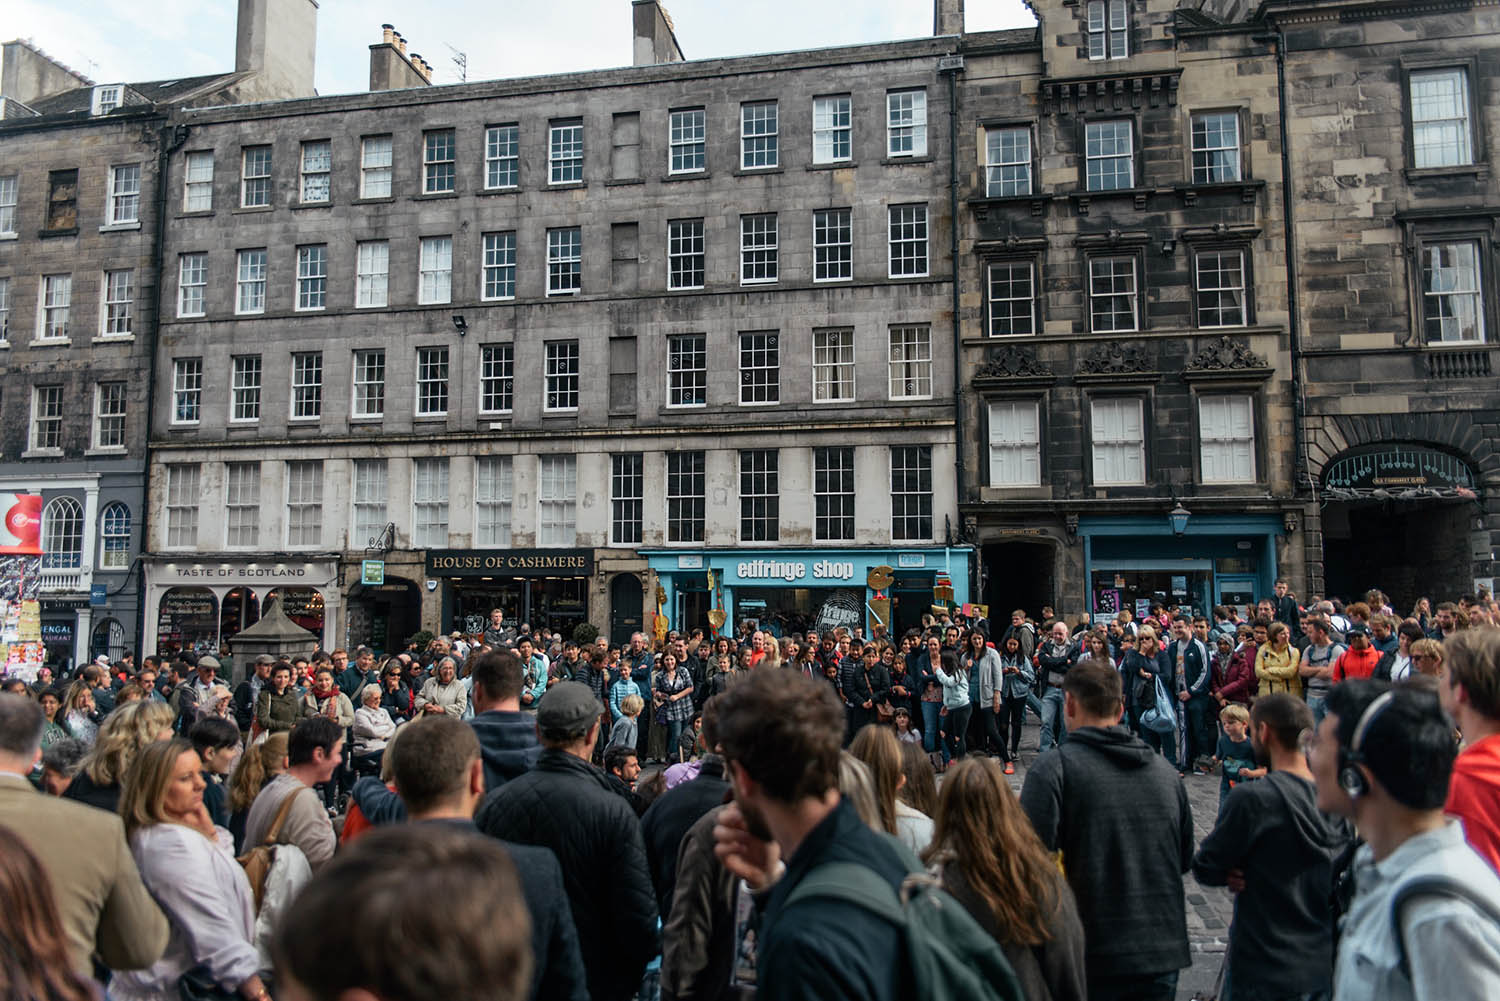 People Gathering at Edinburgh Fringe Festival